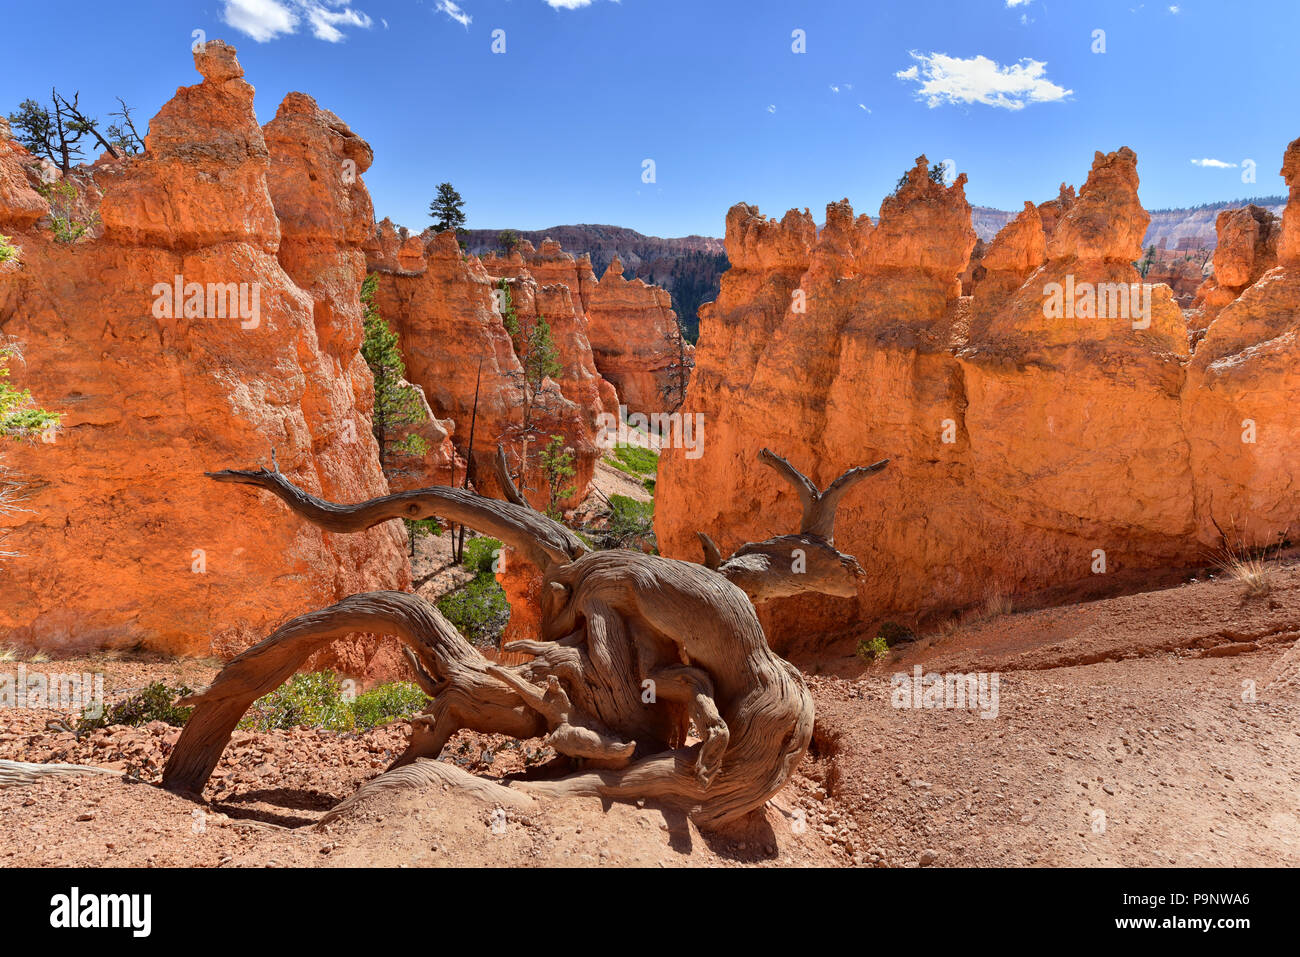 Vecchio weathered ginestra intoppo lungo il sentiero, nel hoodoo Canyon Bryce Canyon National Park, Utah Immagini Stock